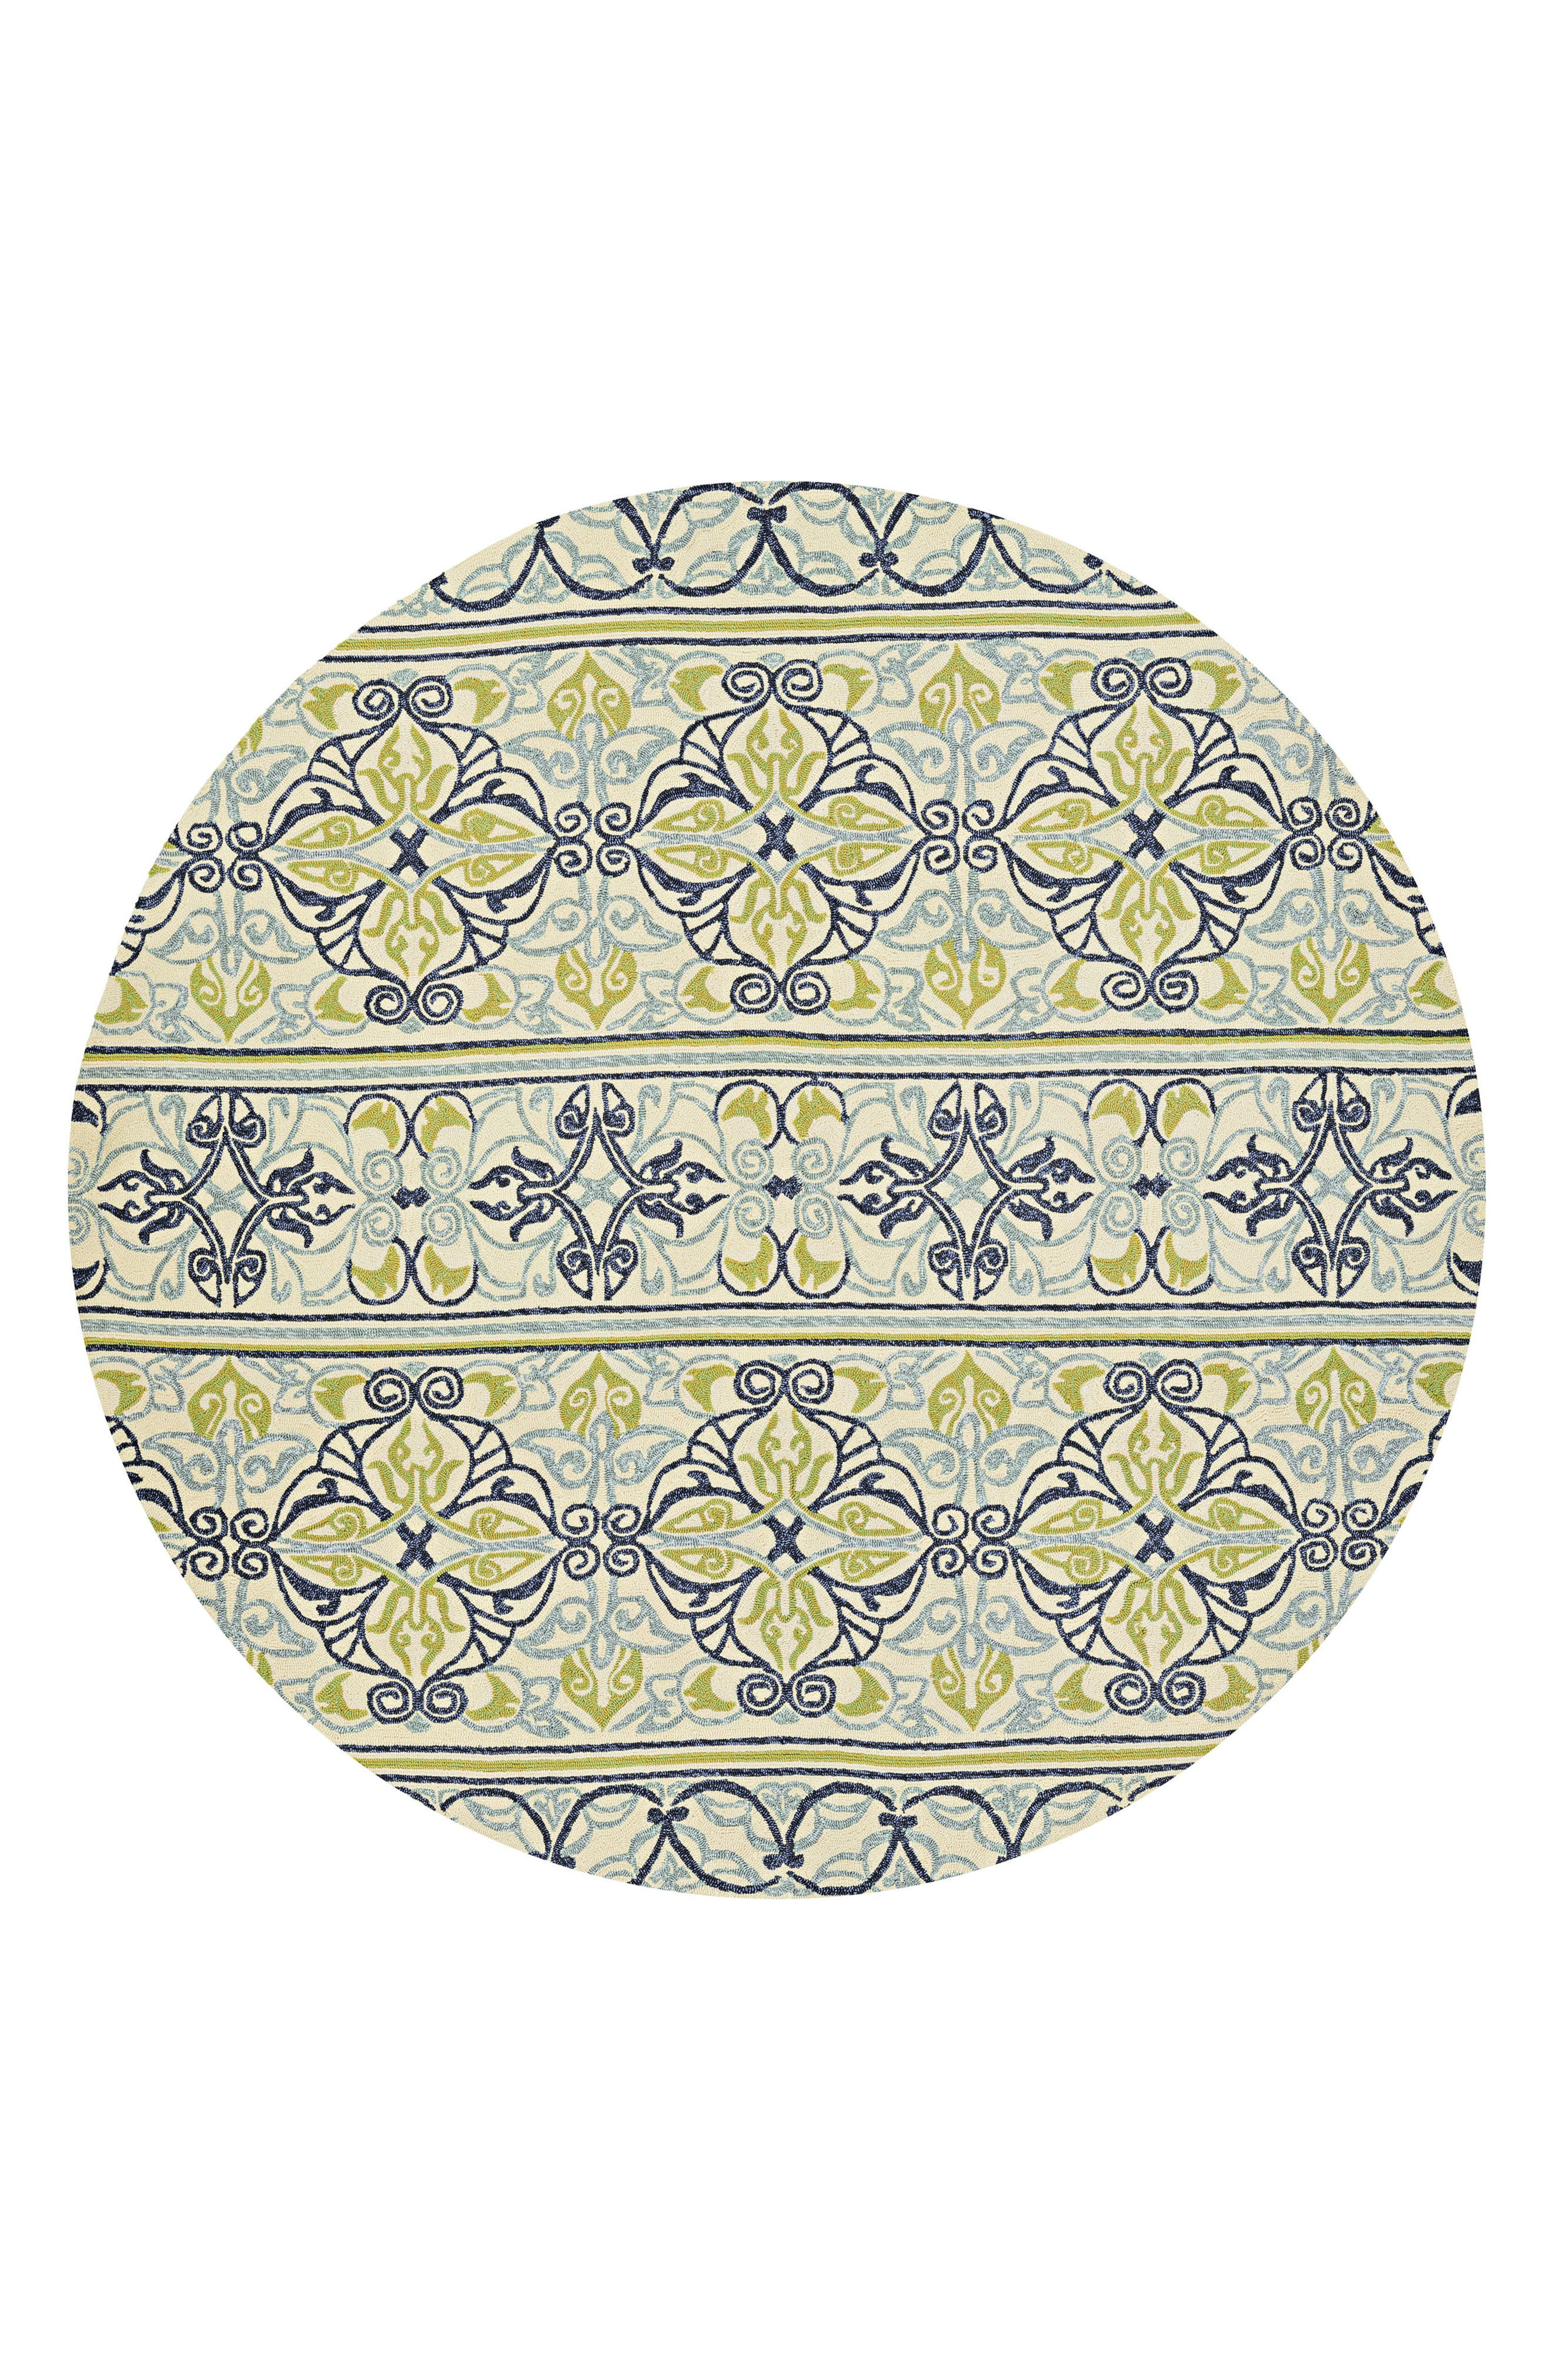 Pegasus Indoor/Outdoor Rug,                             Main thumbnail 1, color,                             Ivory/ Navy/ Lime